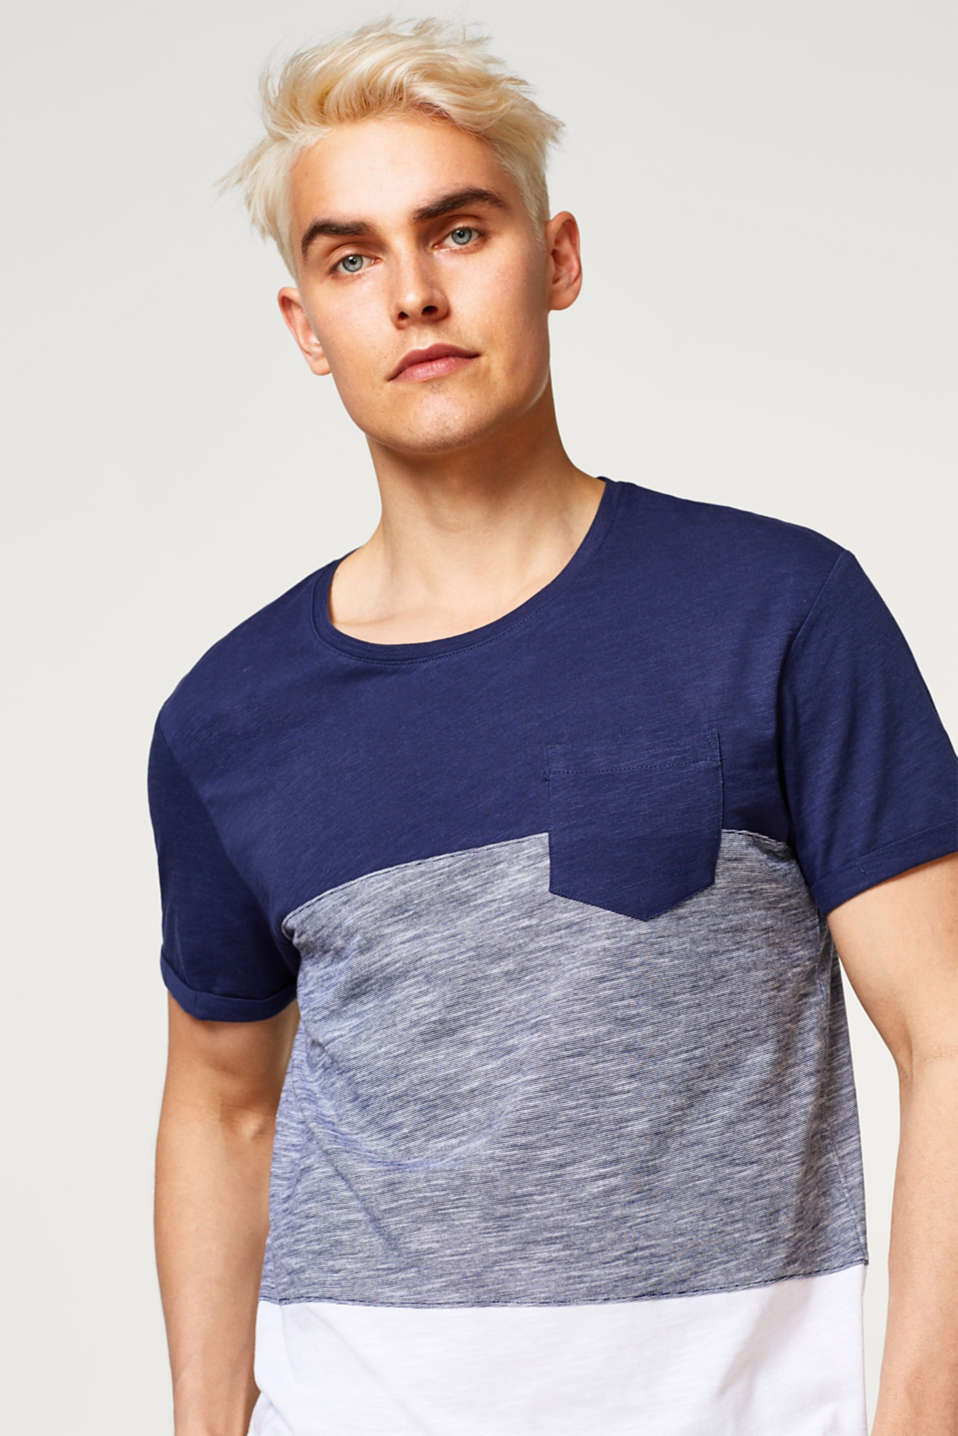 edc - T-shirt with texture mix, in 100% cotton